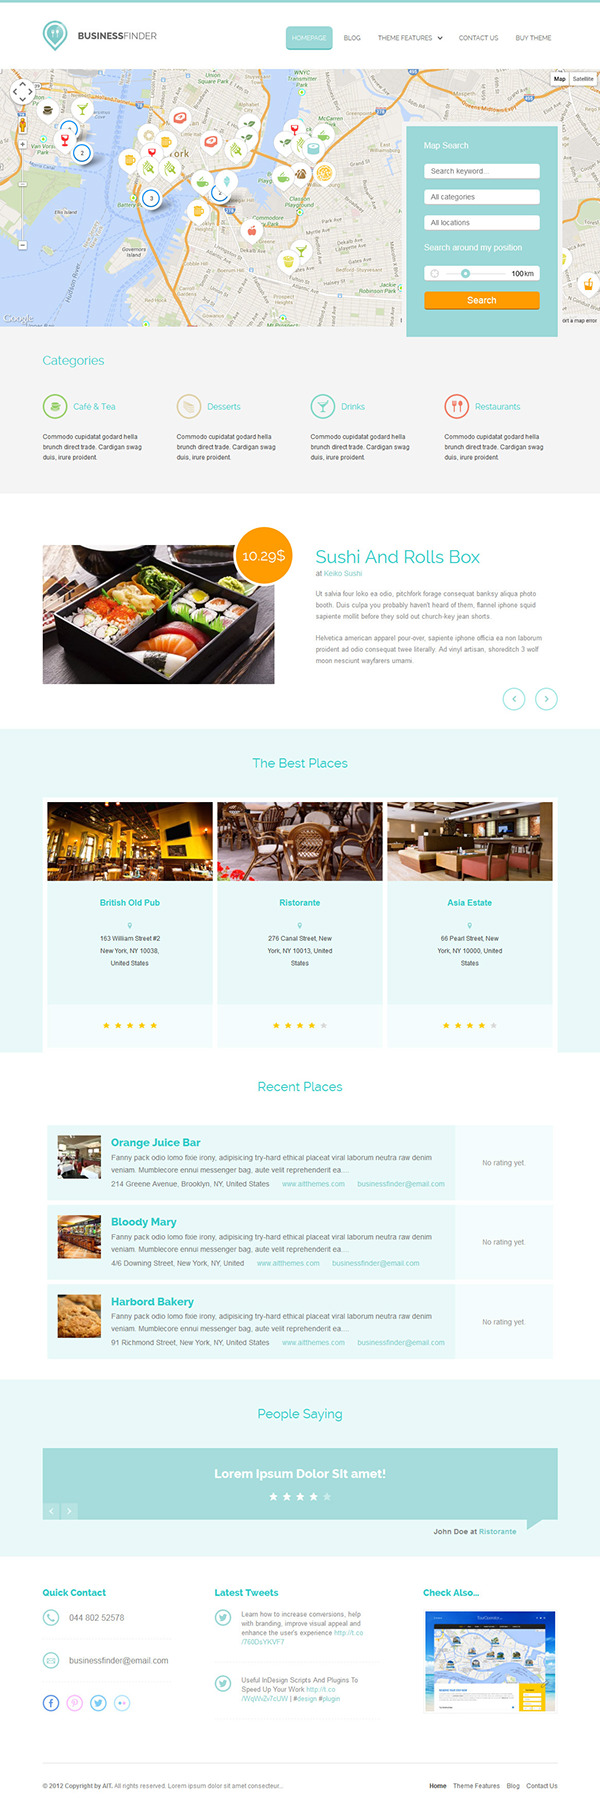 Business Finder: Directory Listing WordPress Theme on Behance